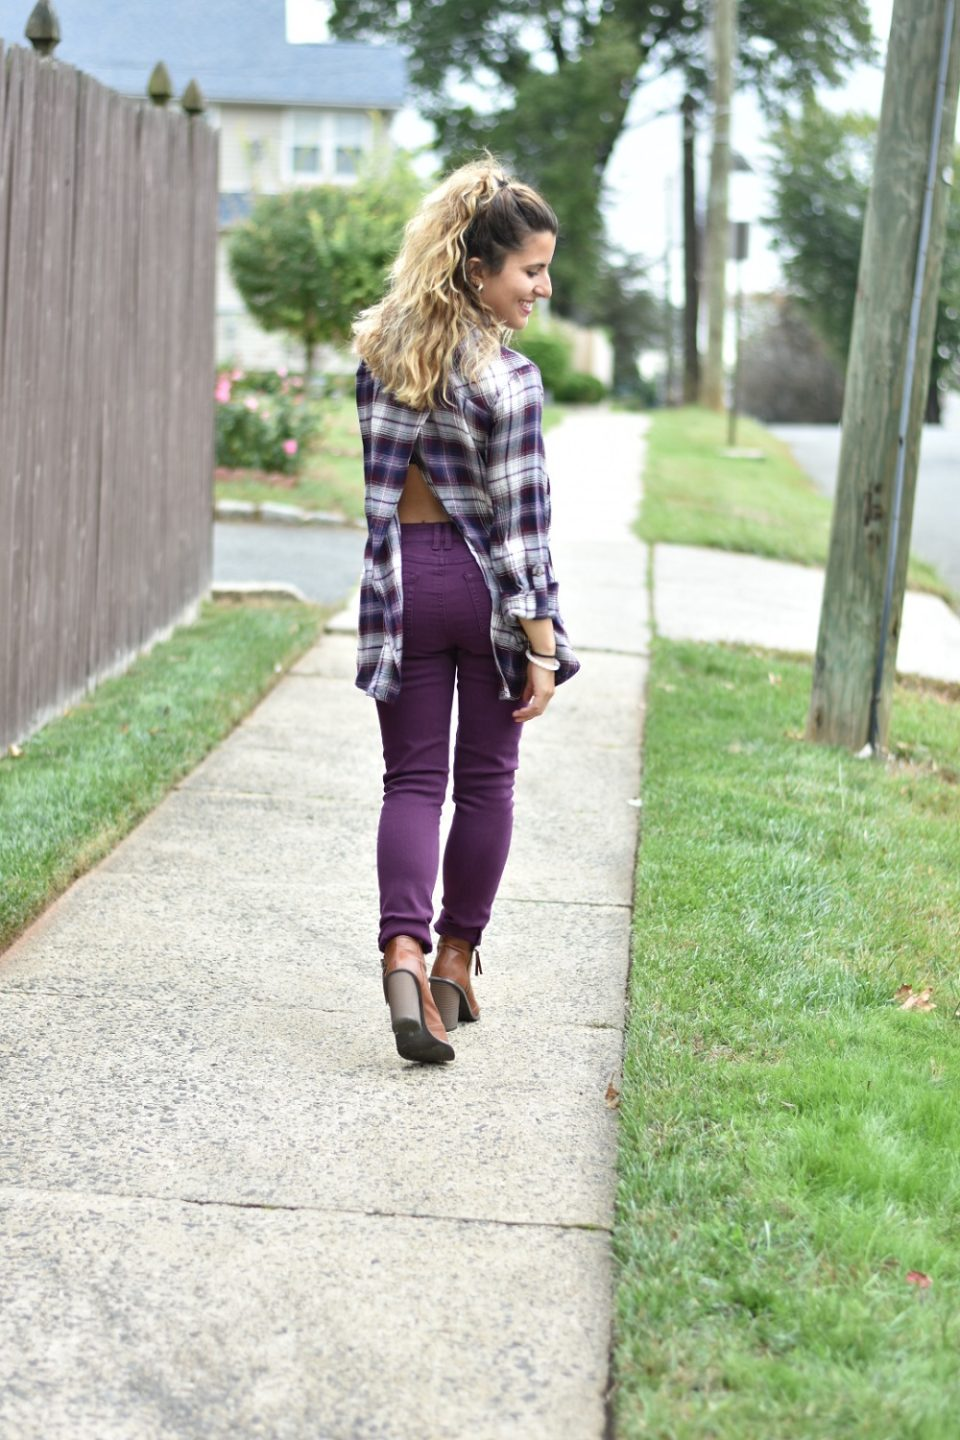 Fun Plaid Styles